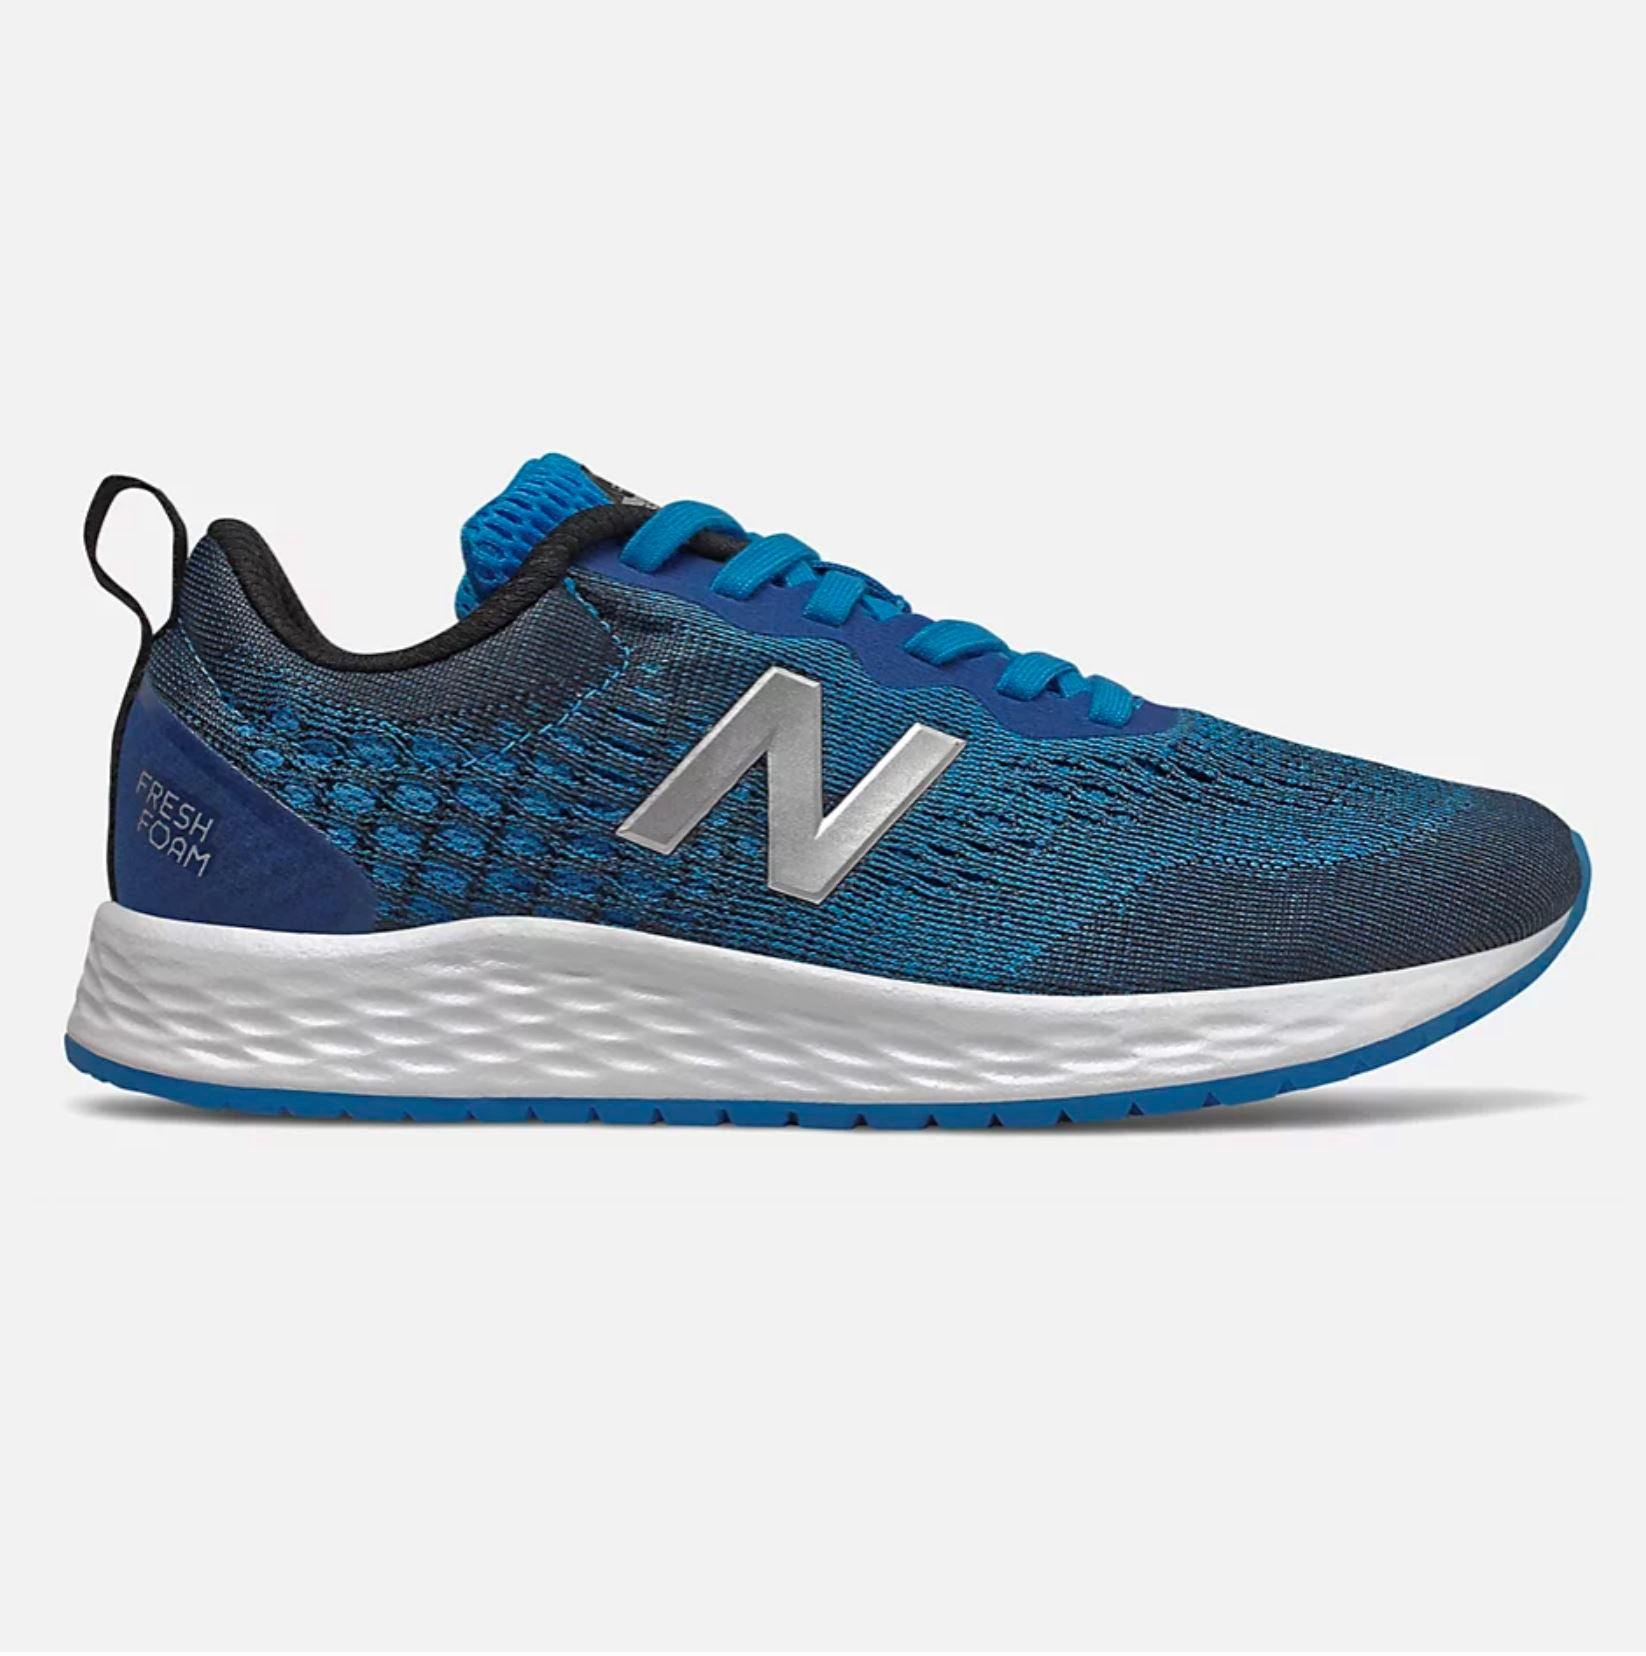 New Balance Kid's Fresh Foam Arishi v2 Running Shoe - Vision Blue/Natural Indigo/Neo Mint SP-Footwear-Kids New Balance